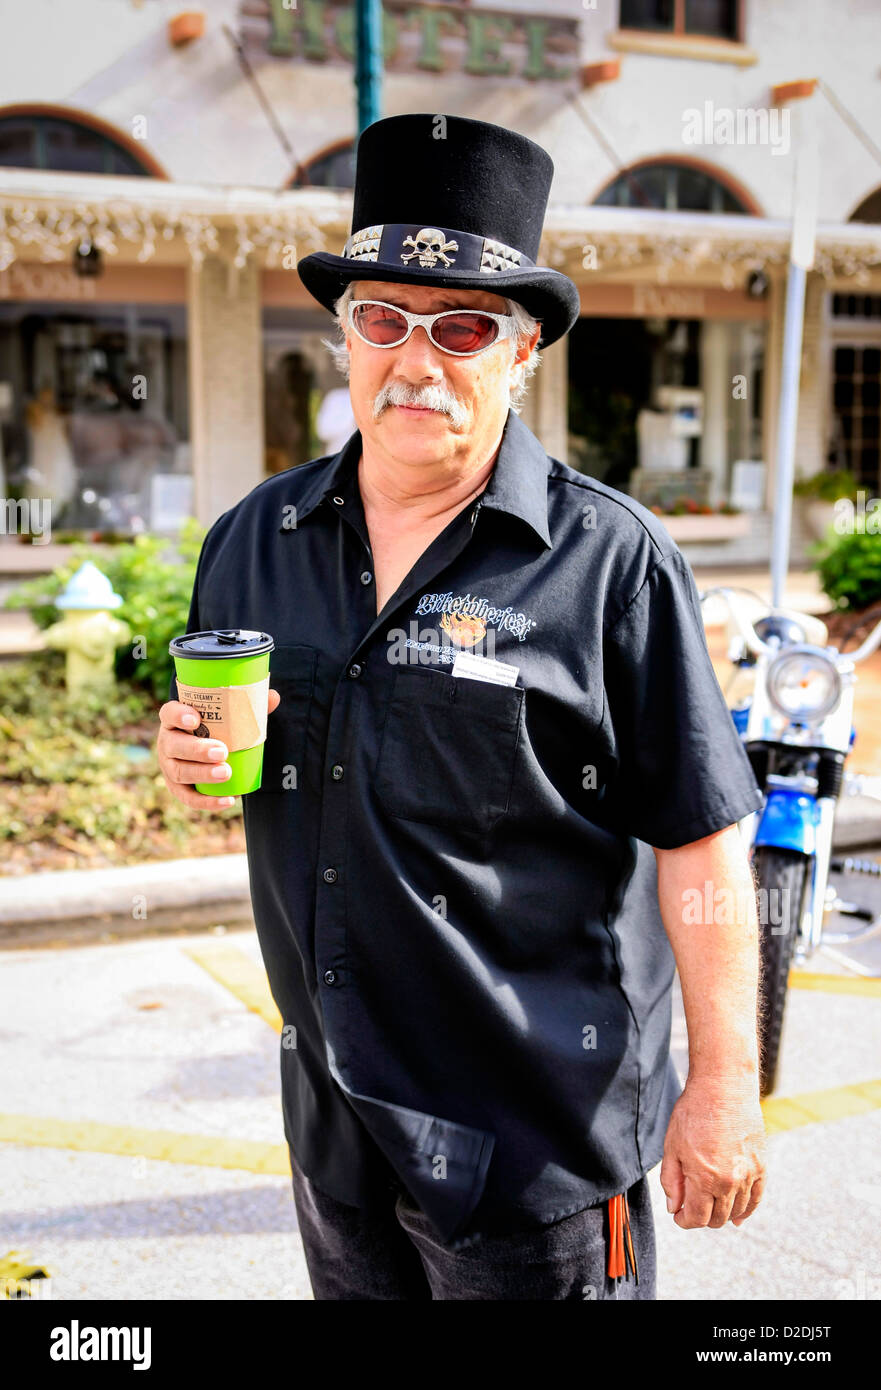 c8aba8ce4ae6 Senior biker wearing a black top hat at the Thunder in the Bay motorcycle  event in Sarasota Florida